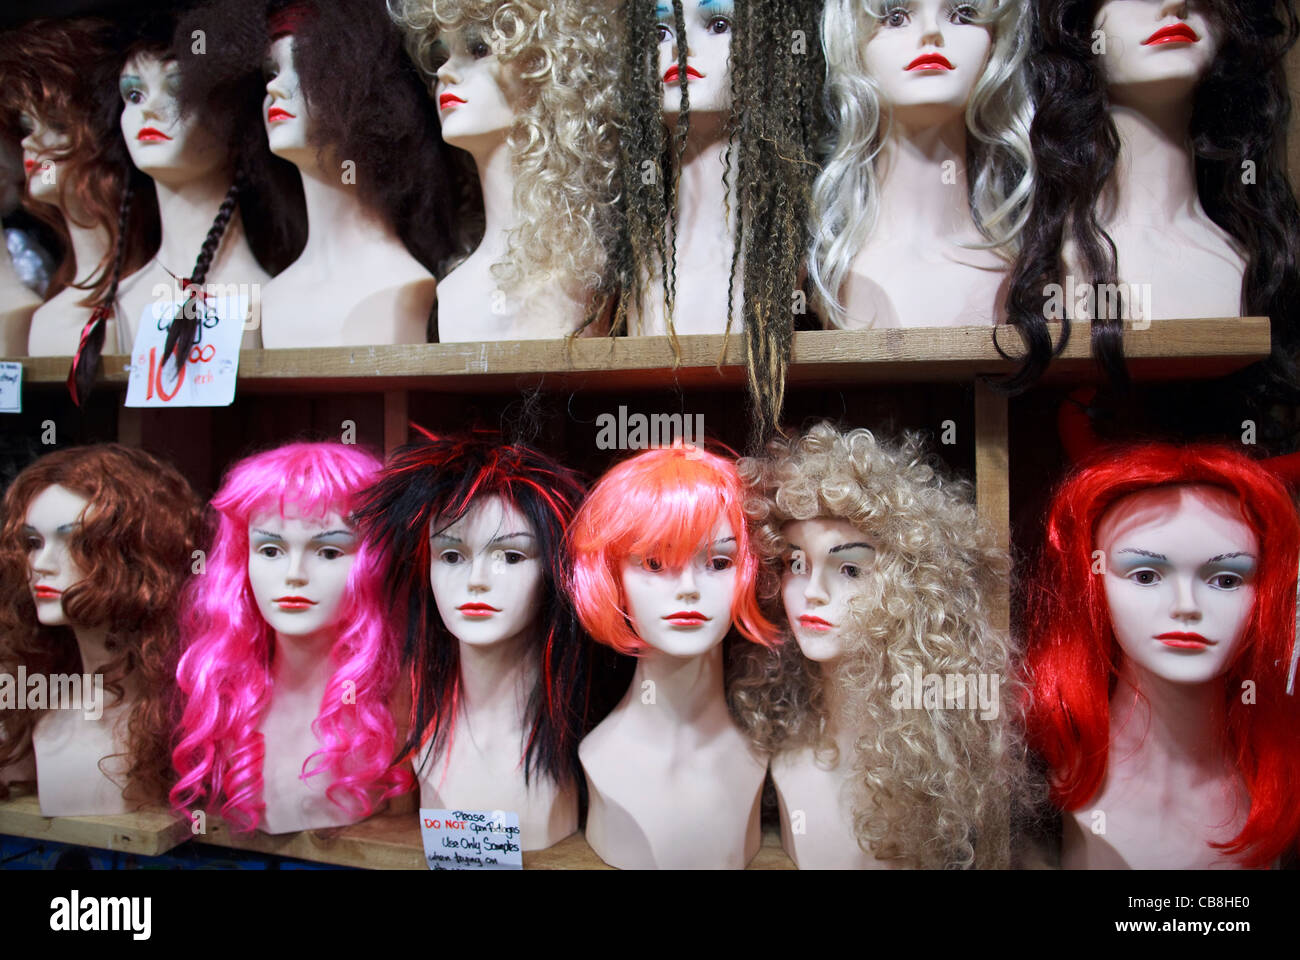 Female wigs on mannequin heads. - Stock Image